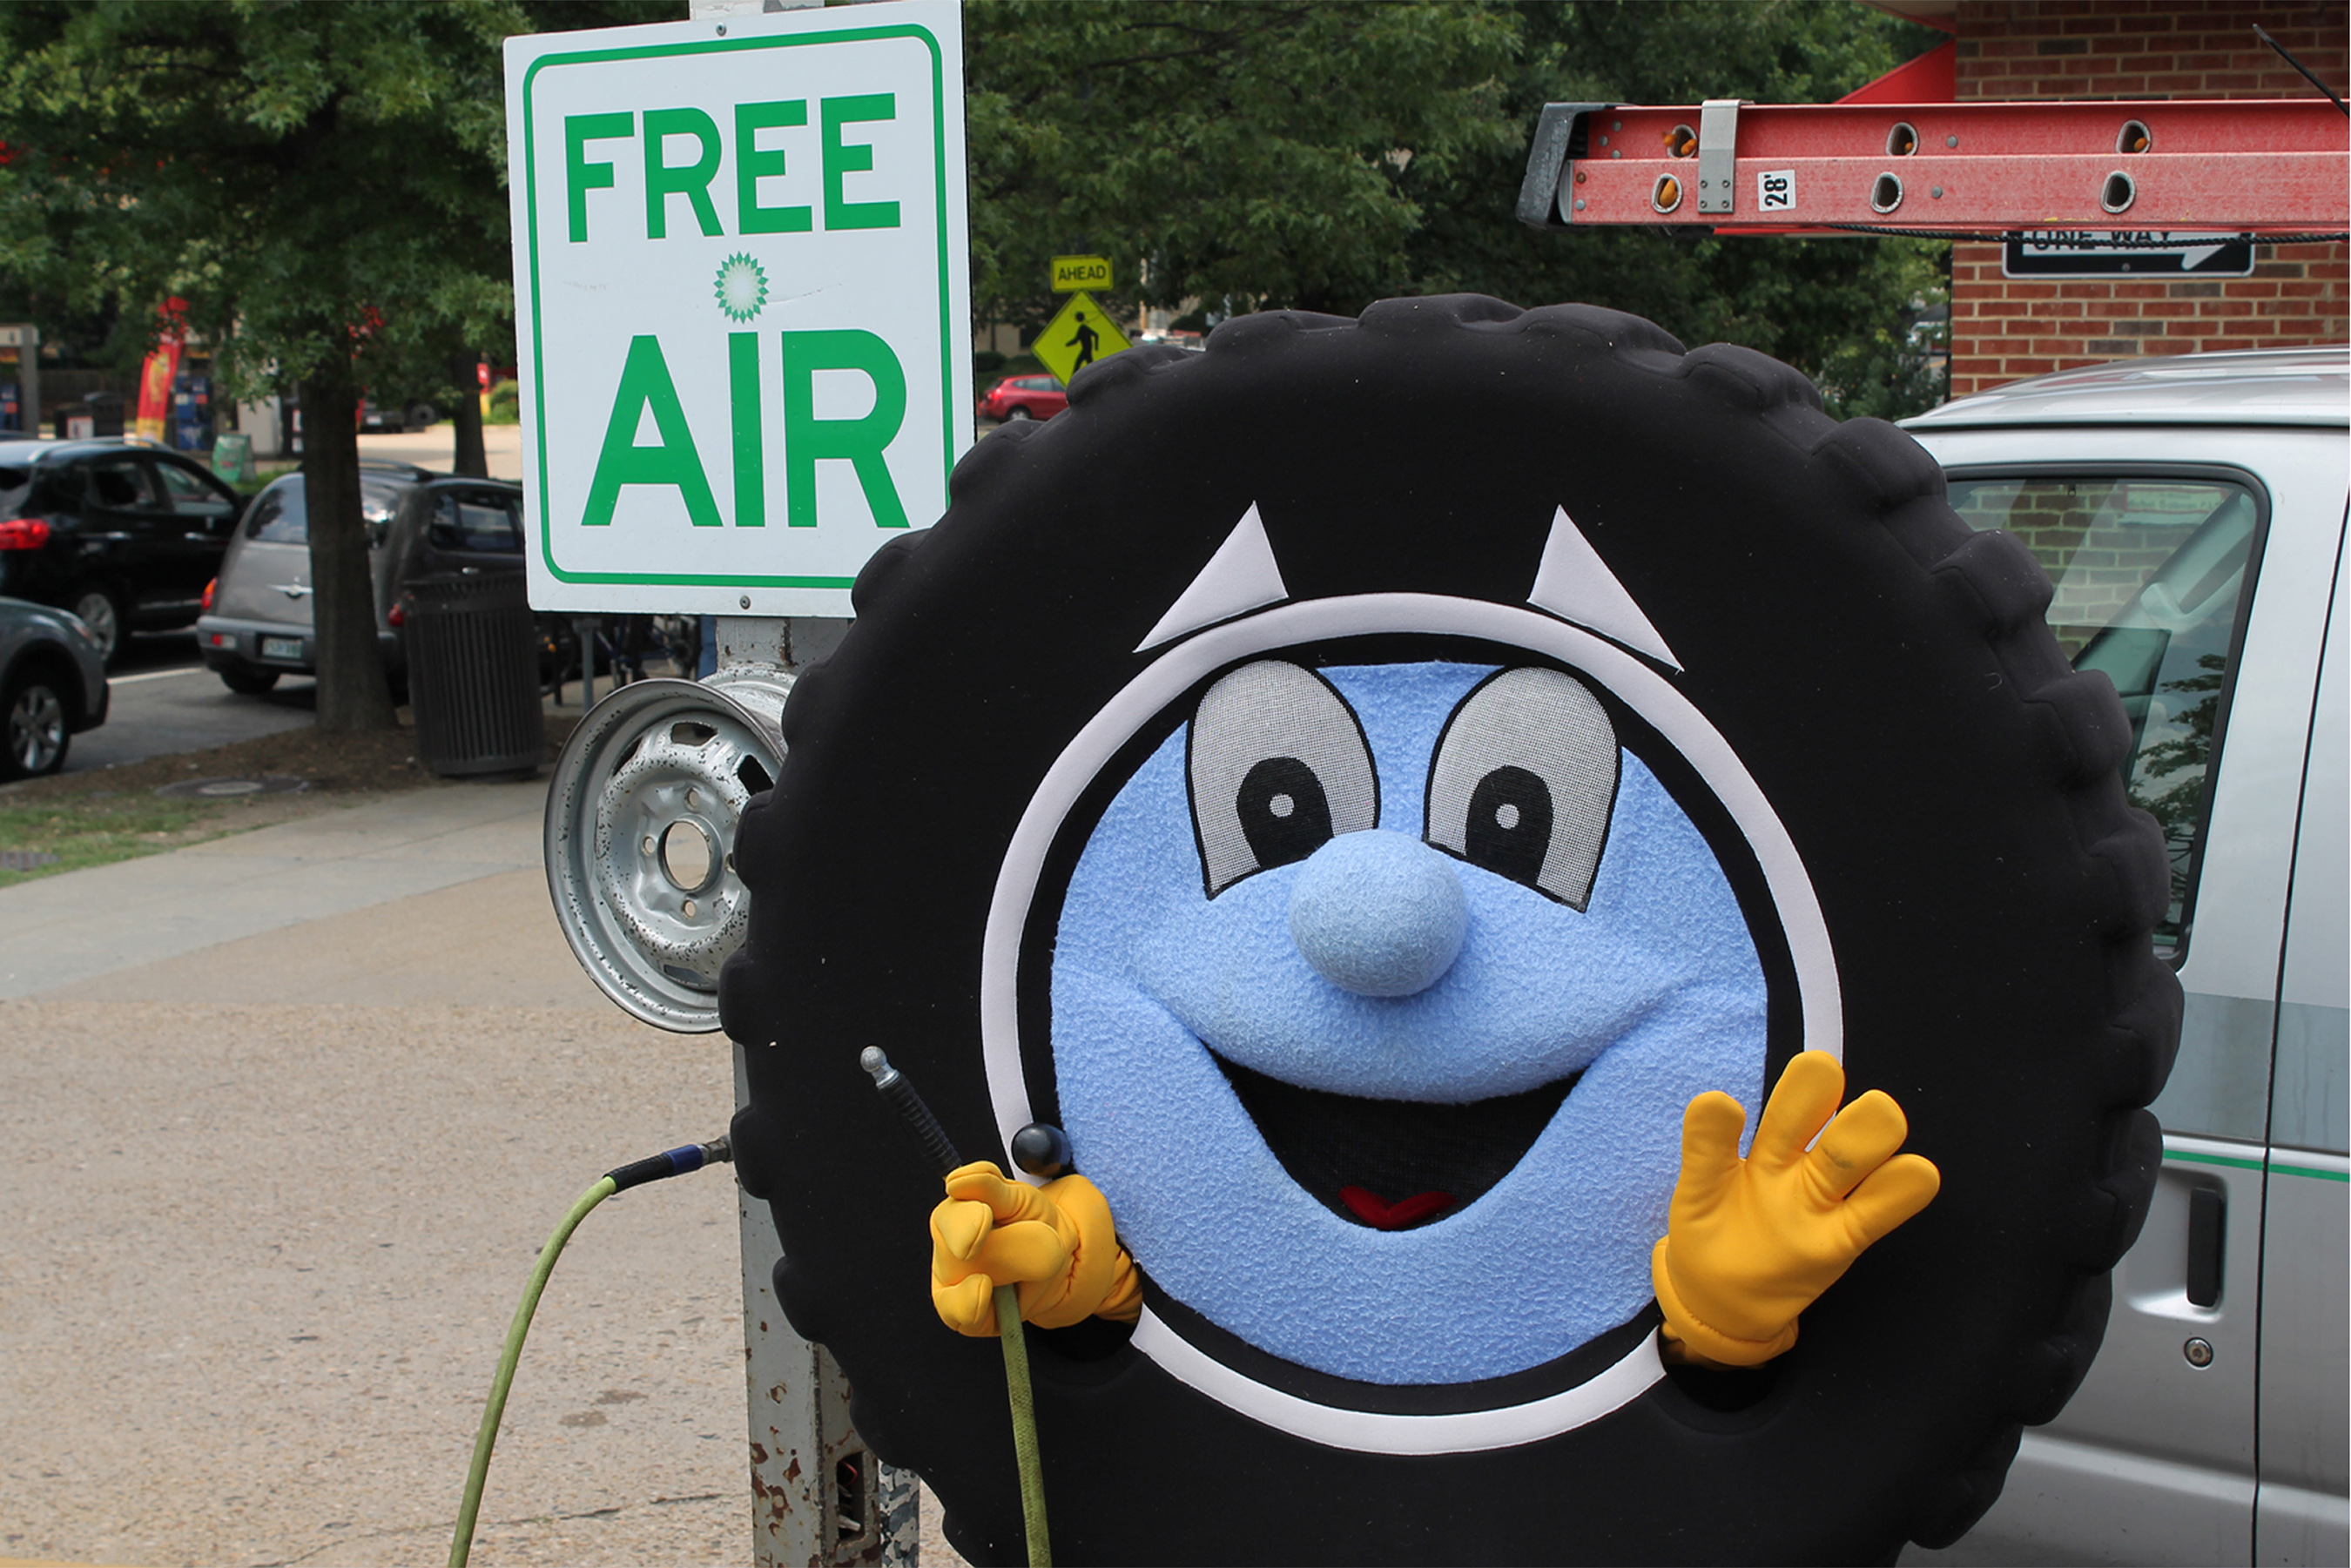 Phillip The Tire wants you to Be Tire Smart for National Tire Safety Week!